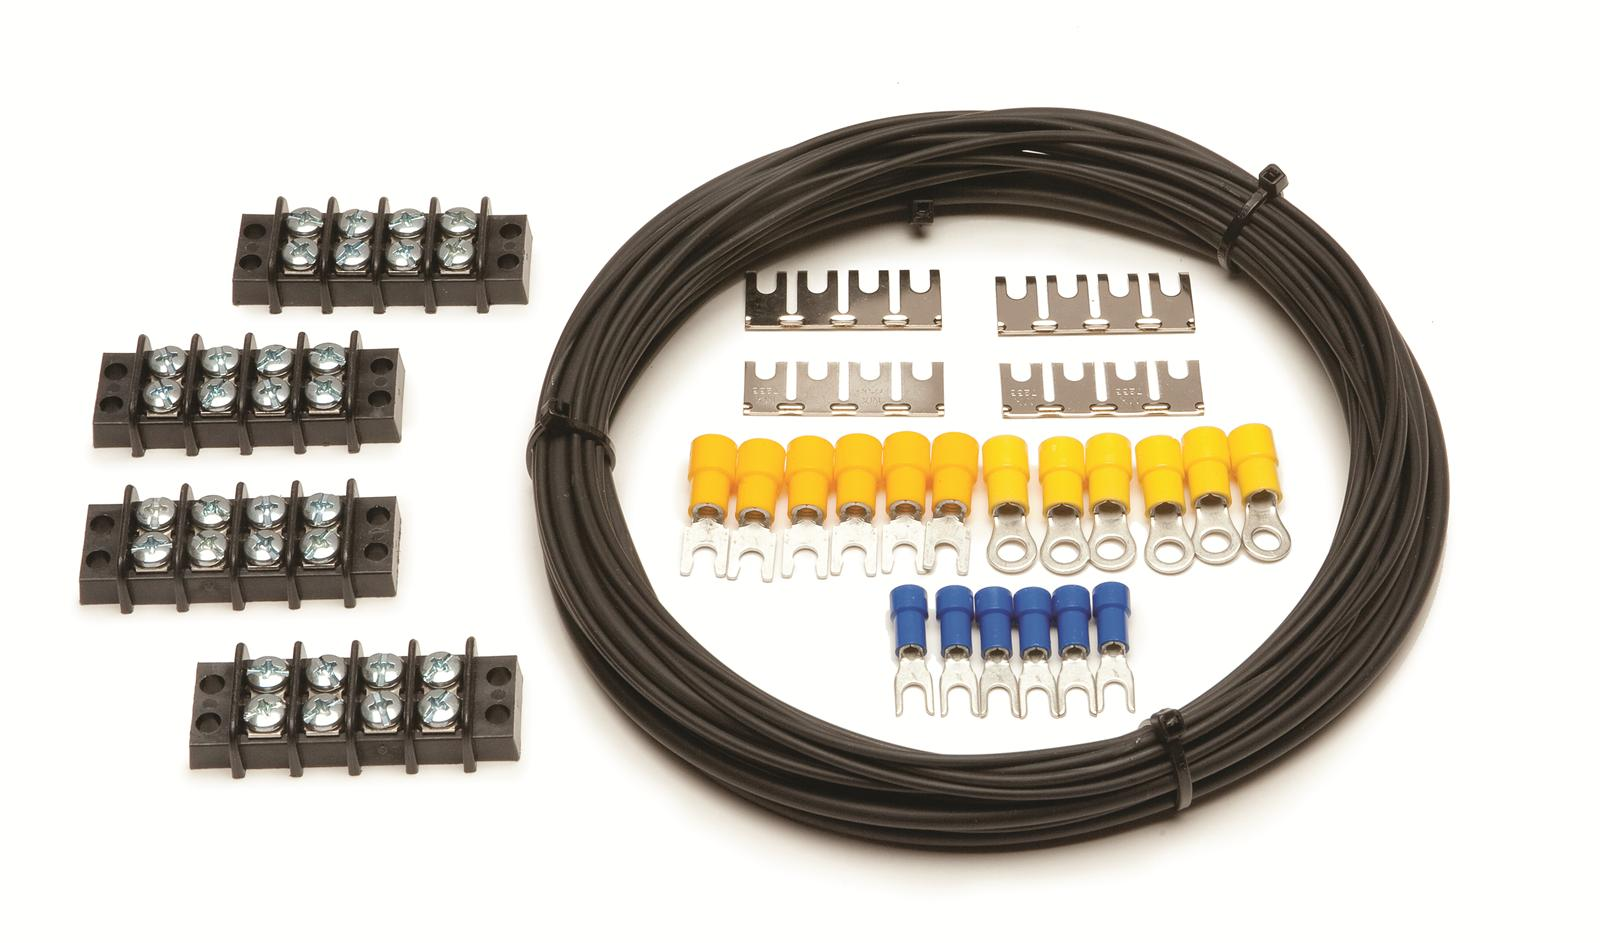 hight resolution of painless performance fiberglass body ground wire kits 40026 free shipping on orders over 99 at summit racing